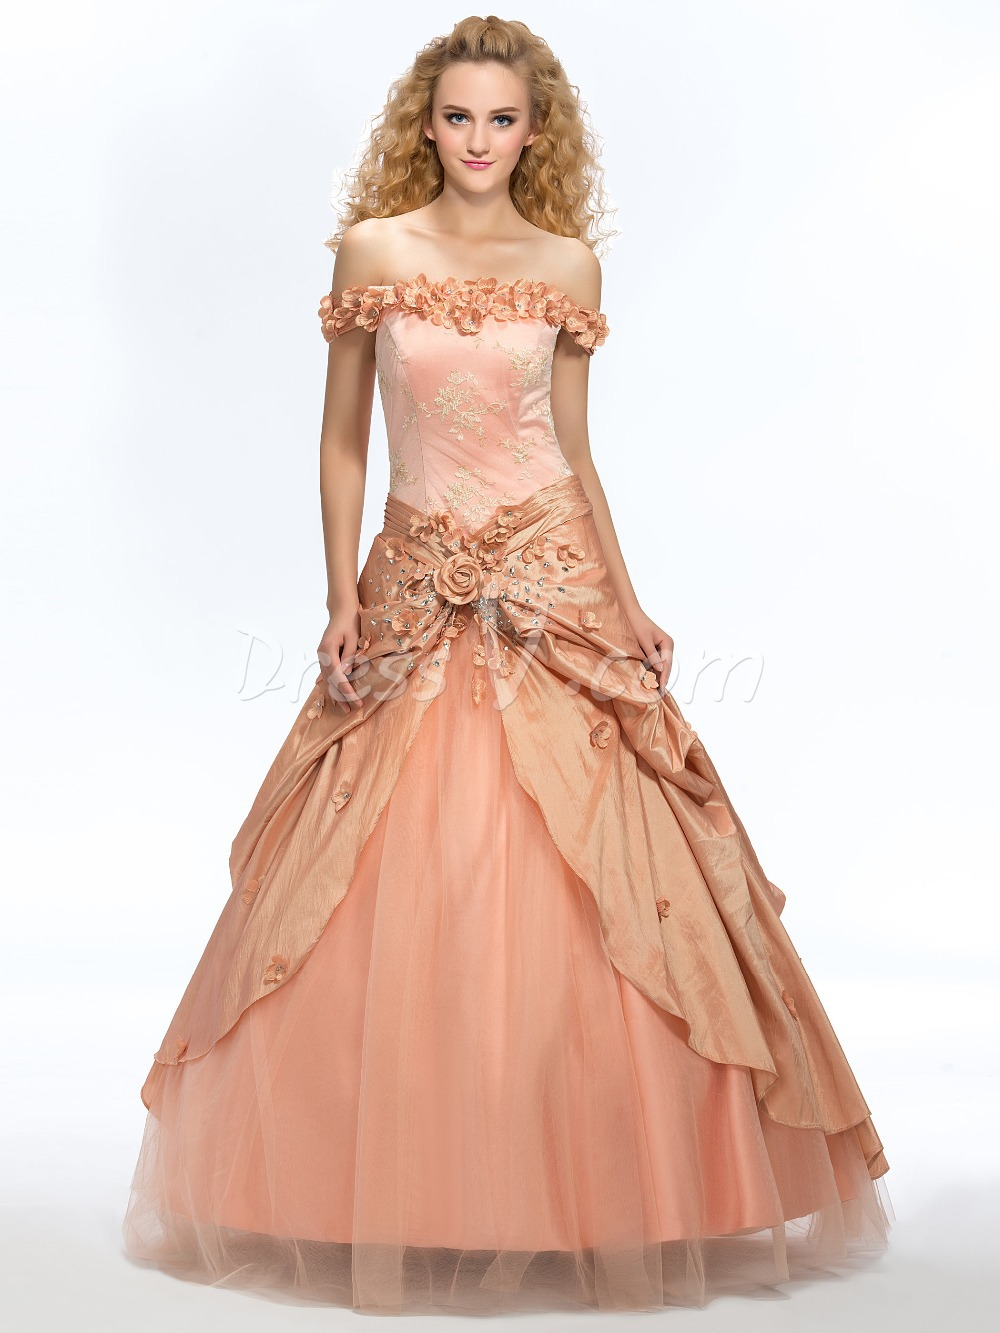 fb5ba008e Get Quotations · Elegant Champagne Ball Gown Quinceanera Dresses 2015 Sexy  Off-the-Shoulder Lace Floral Puffy